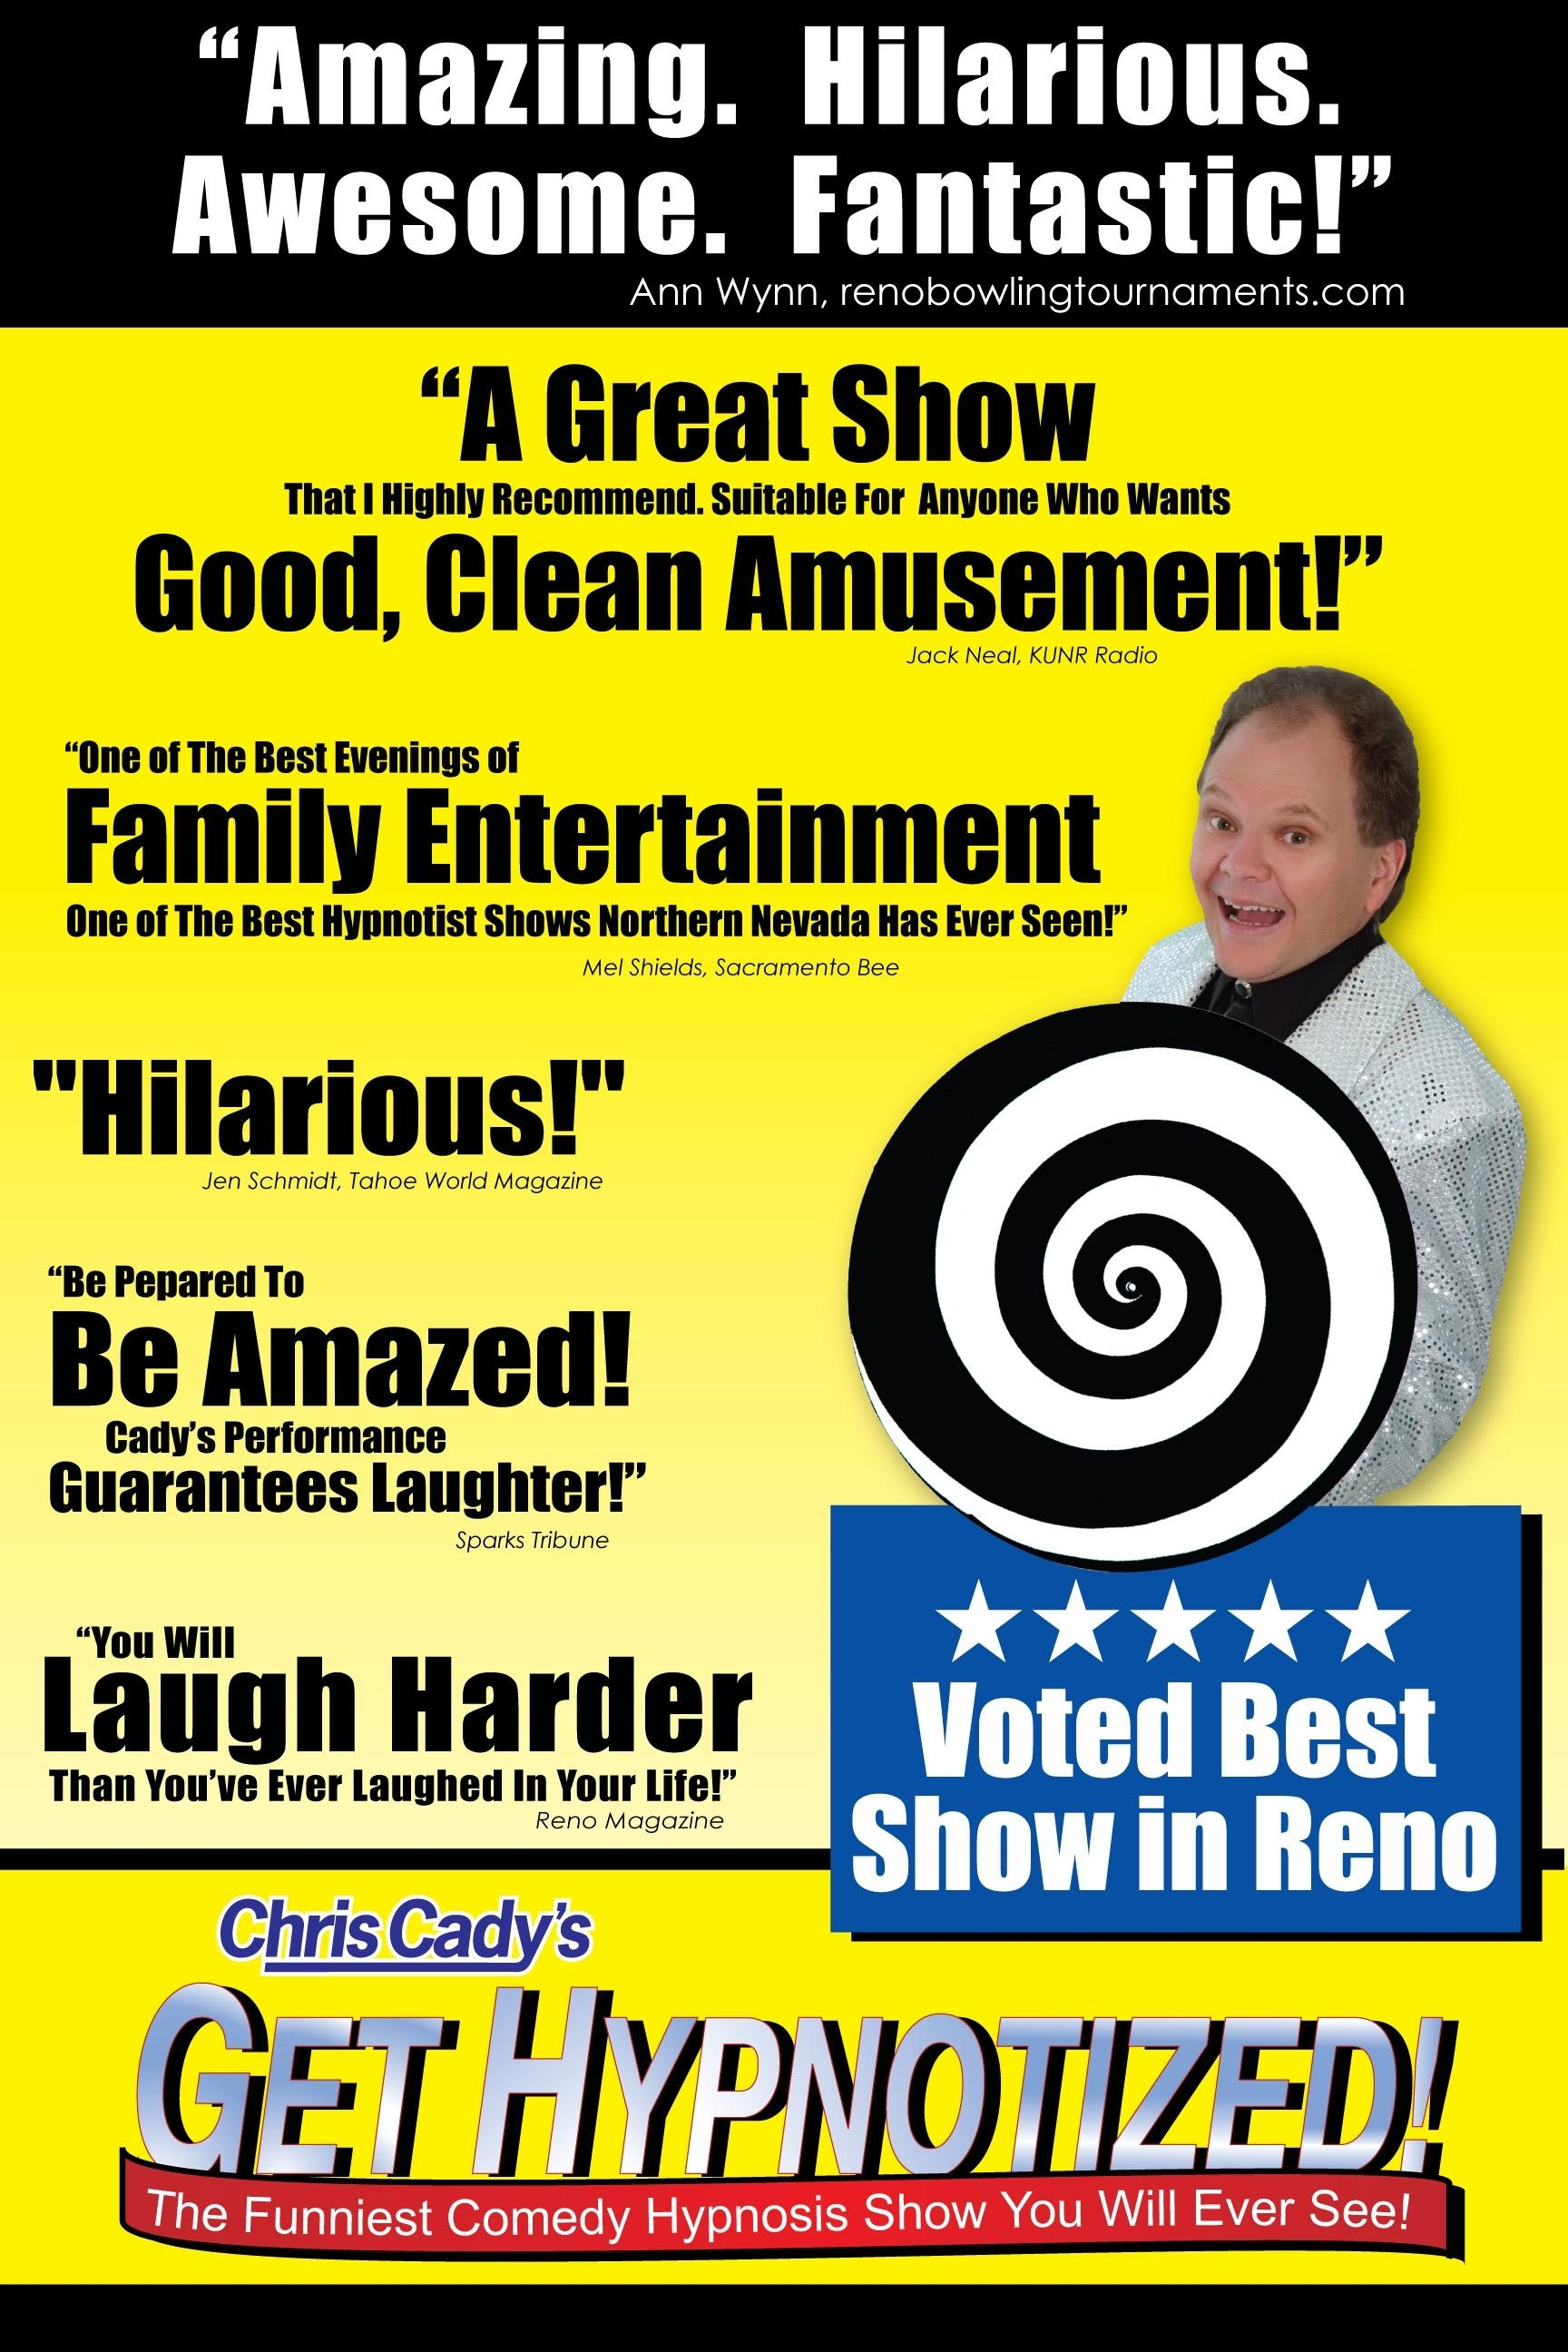 hypnotist chris cady comedy hypnosis show poster from get hypnotized show